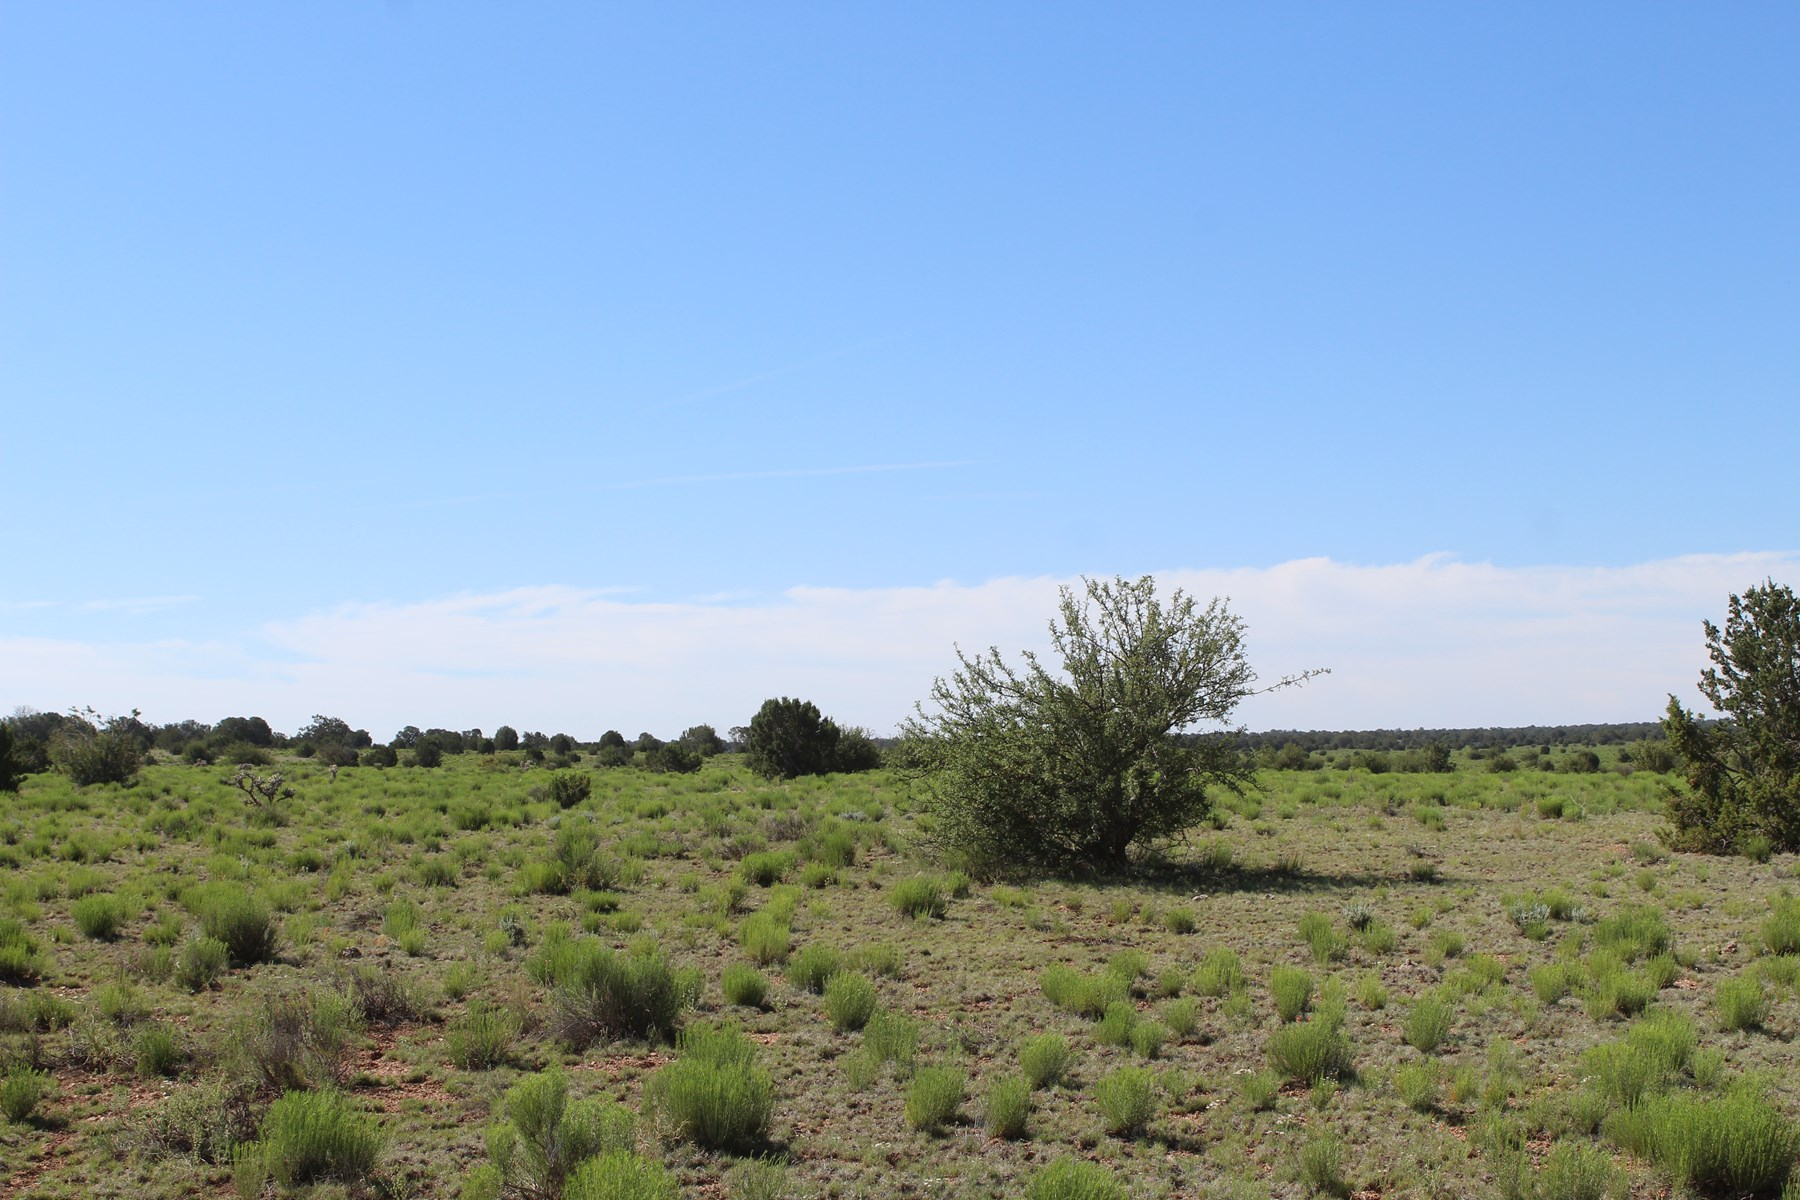 40 acres of Mountain Land in Northern Arizona for sale